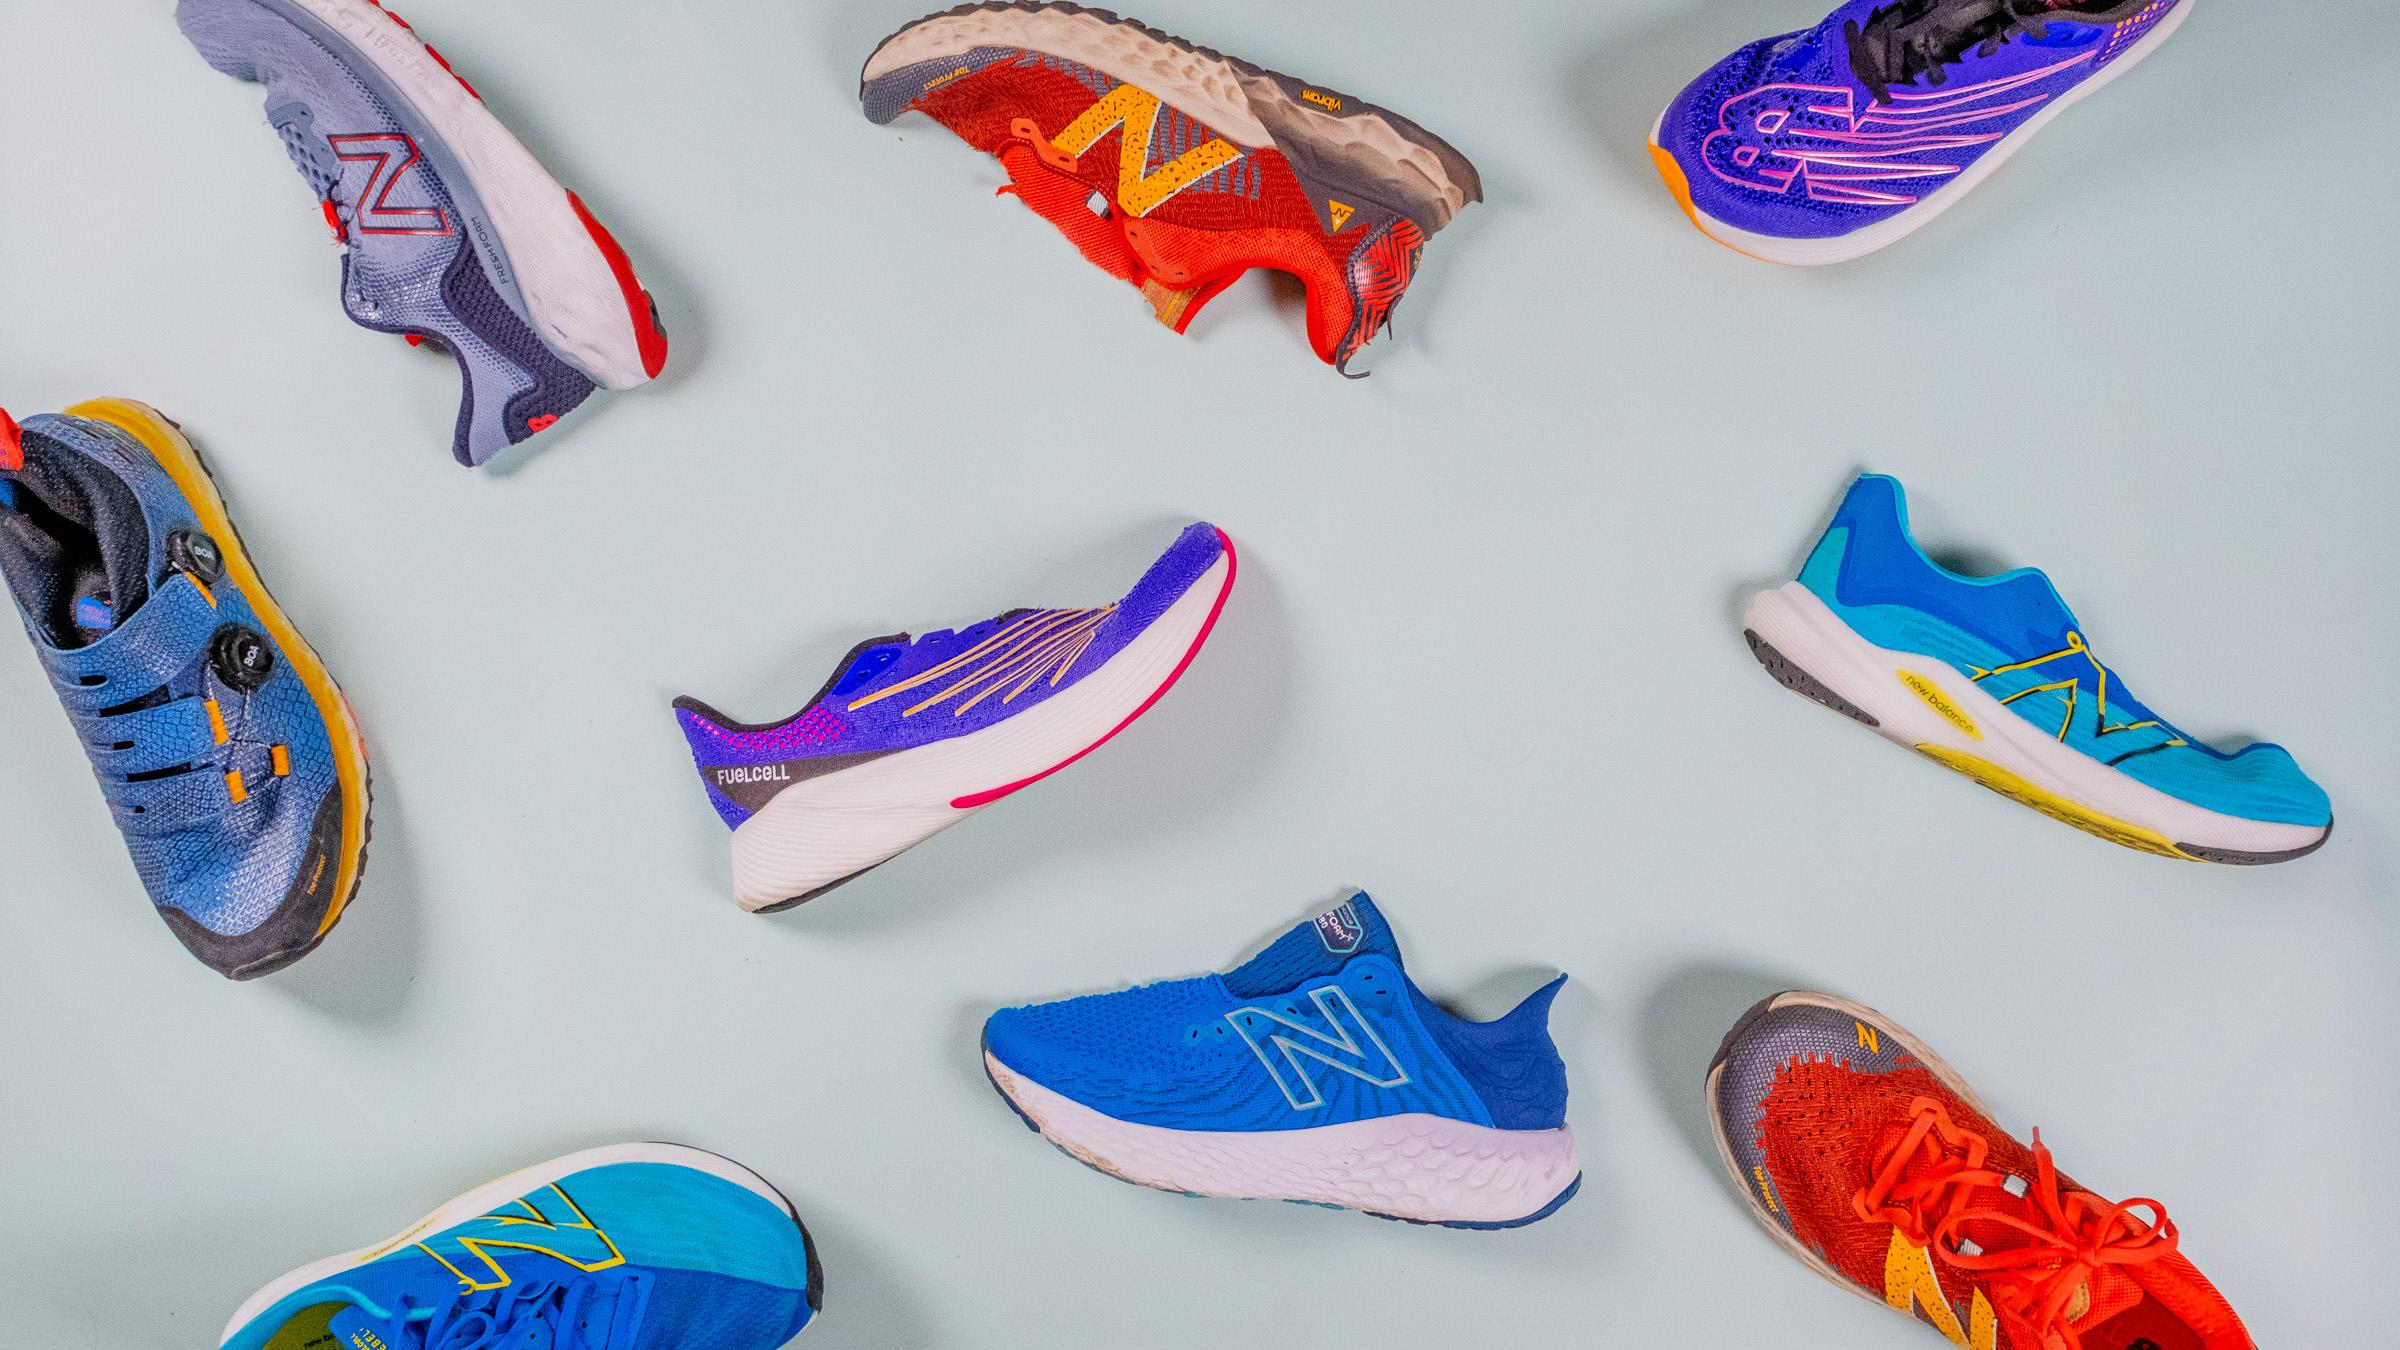 10 Best New Balance Running Shoes in 2021